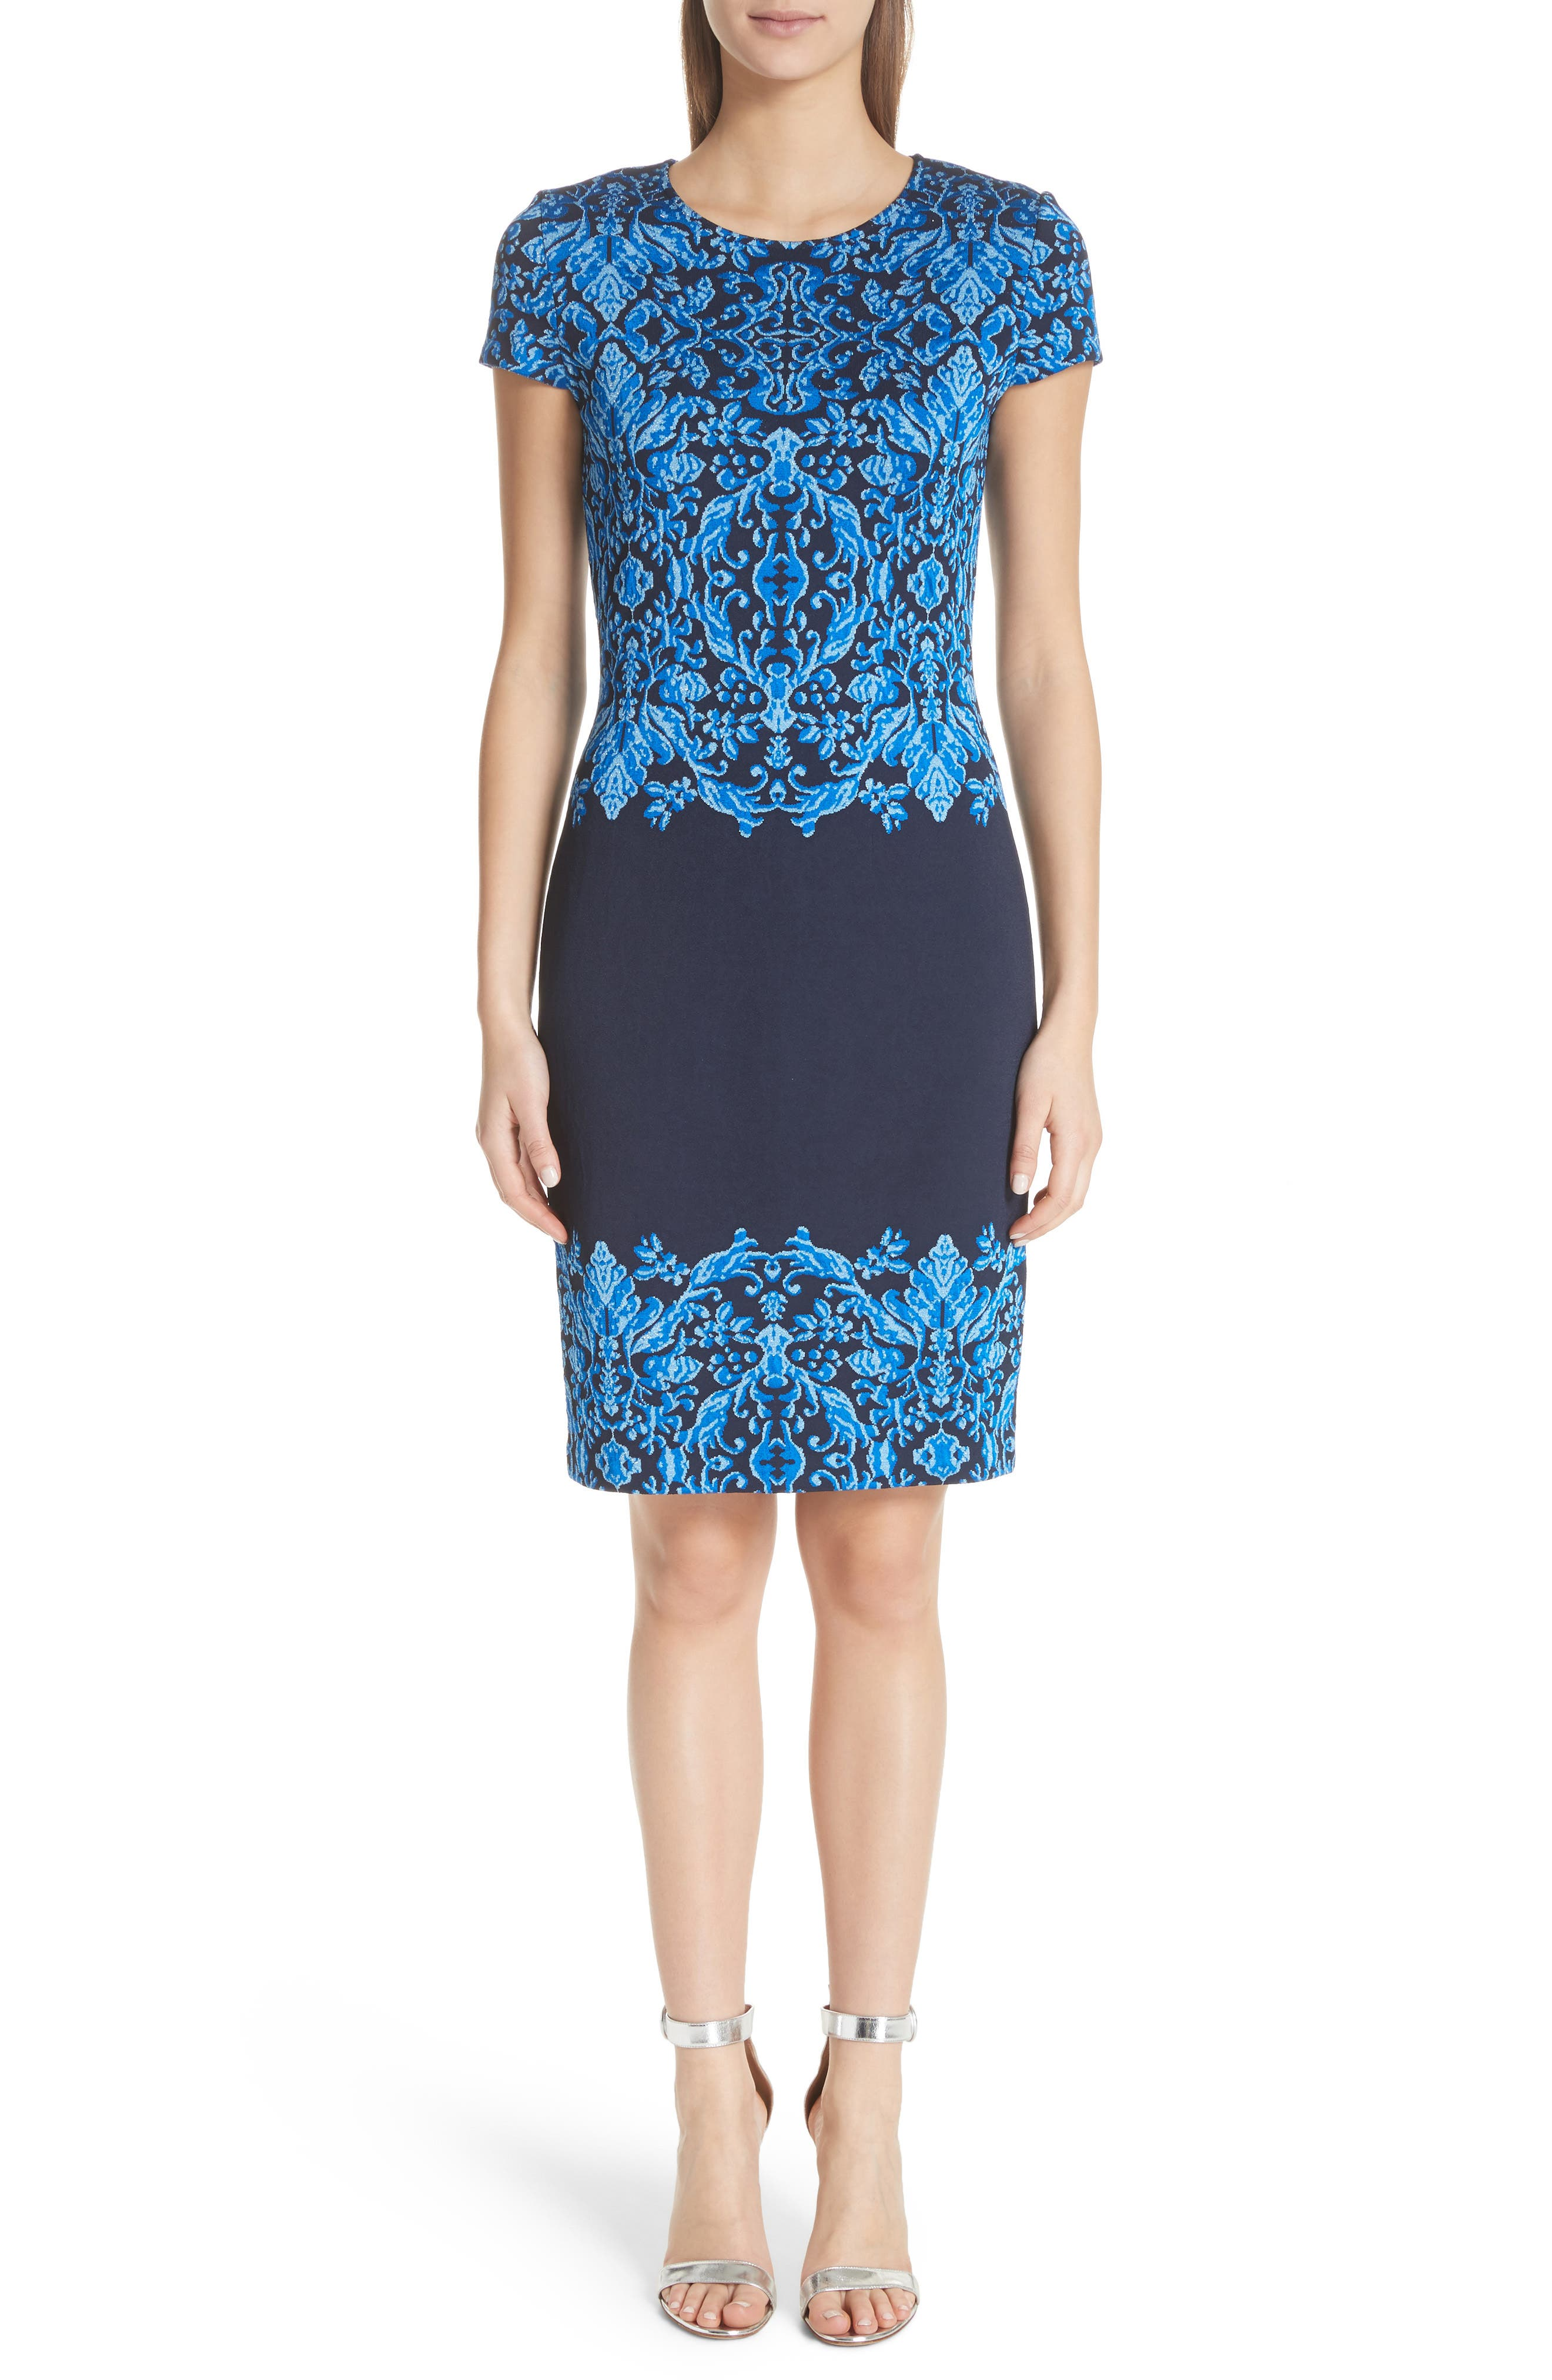 St. John Collection Cool Tones Brocade Knit Dress